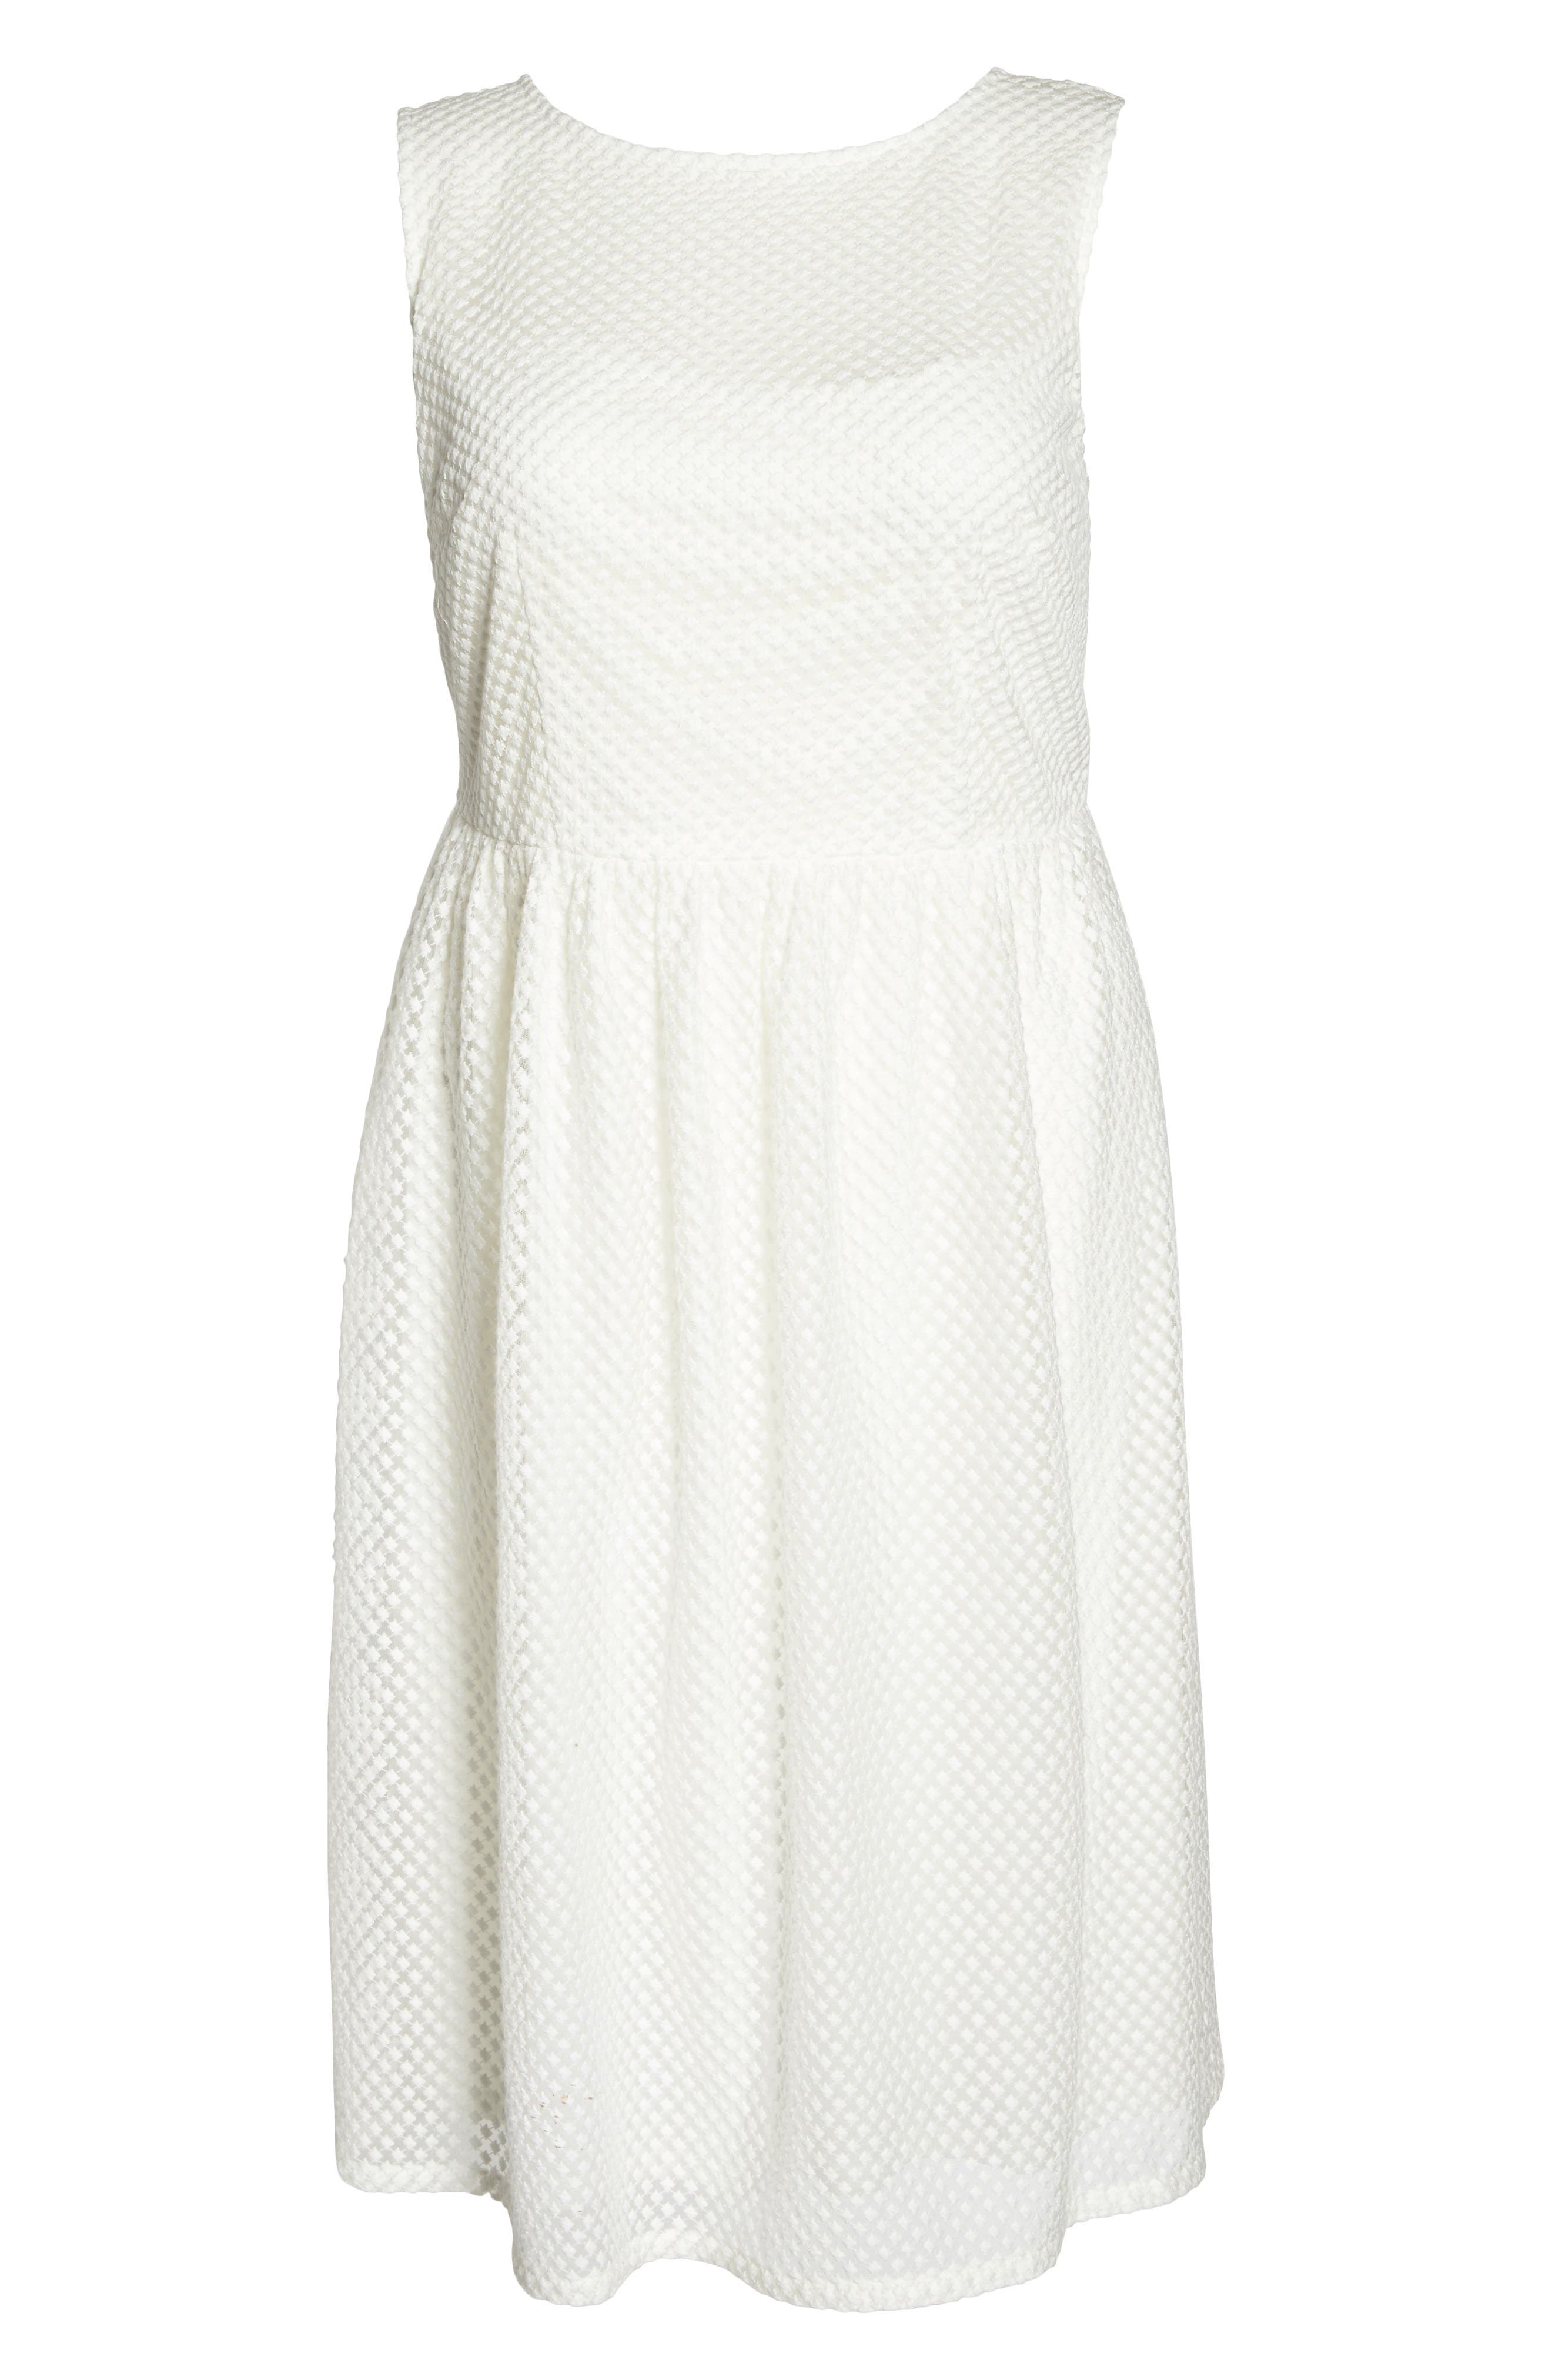 Adrianne Papell Diamond Embroidered Fit & Flare Dress,                             Alternate thumbnail 6, color,                             904